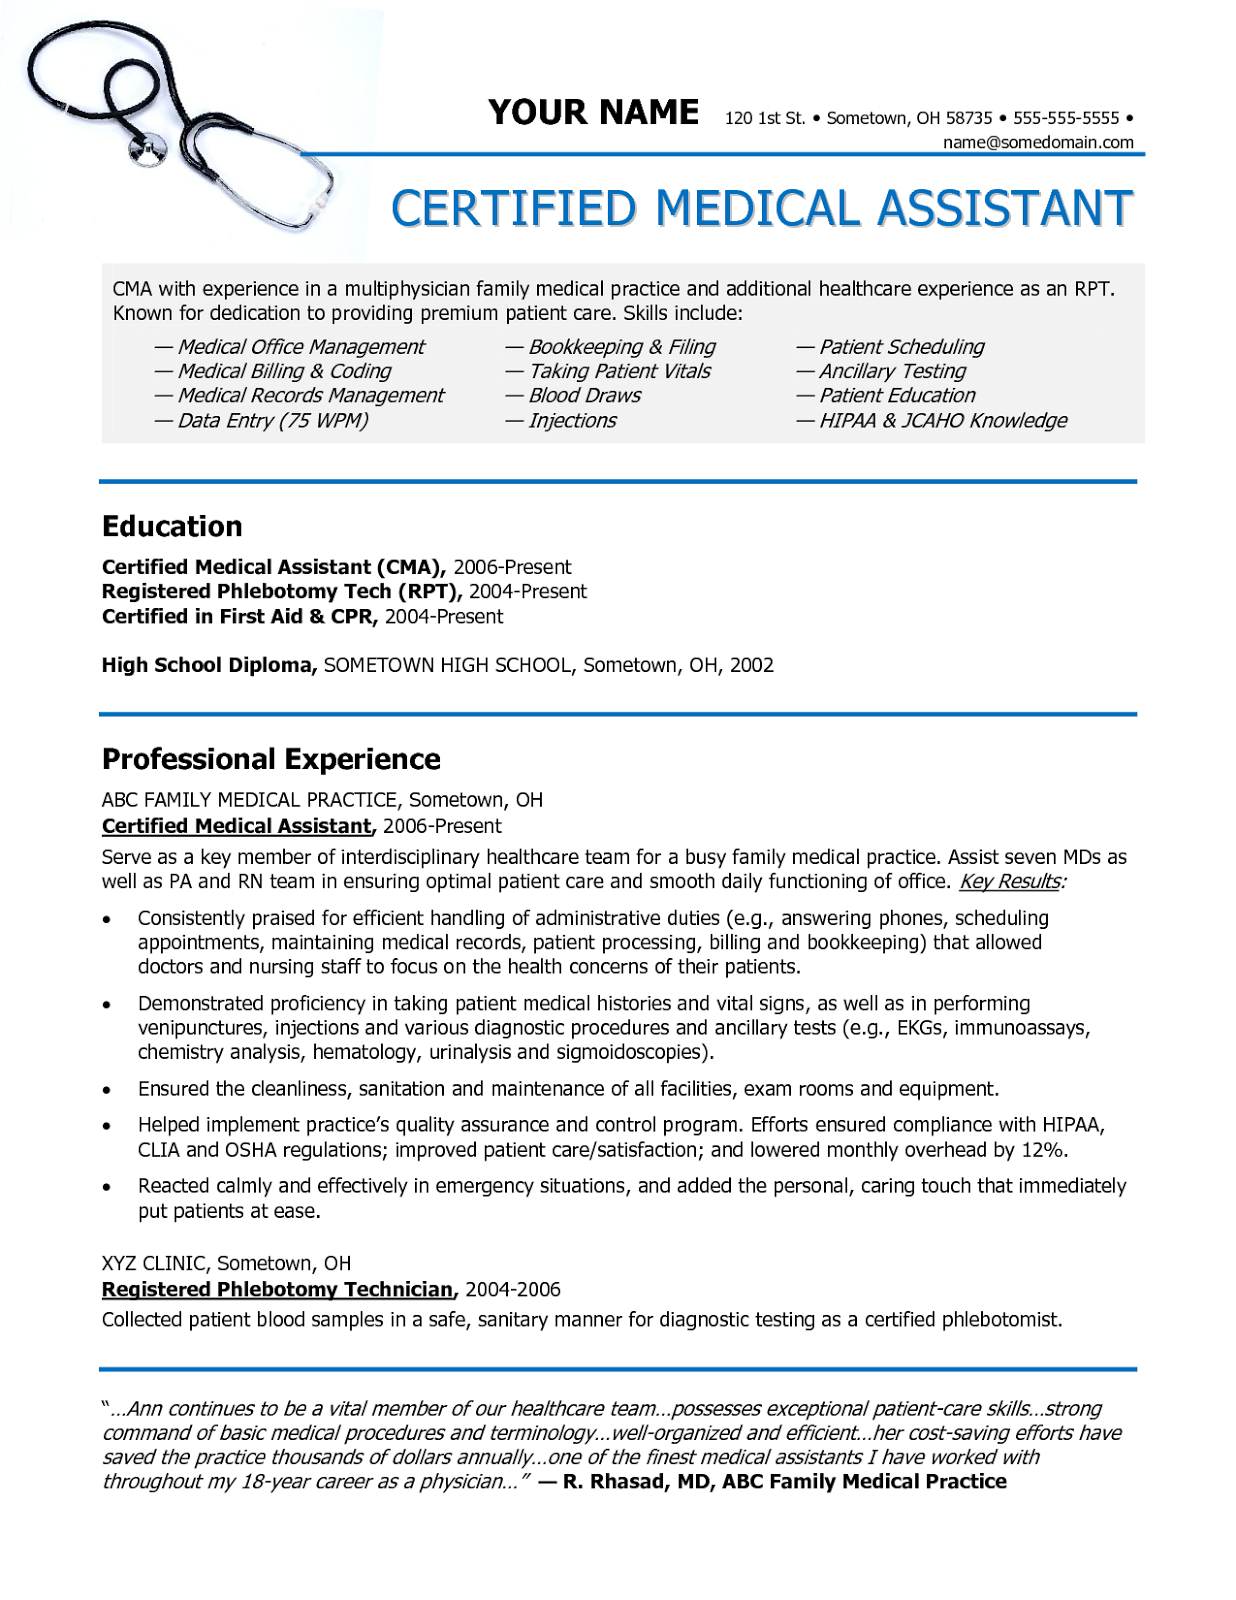 nursing resume template za resume example nursing resume template za nursing strategy 2013 sa nursing council home page clinical laboratory technologist resume